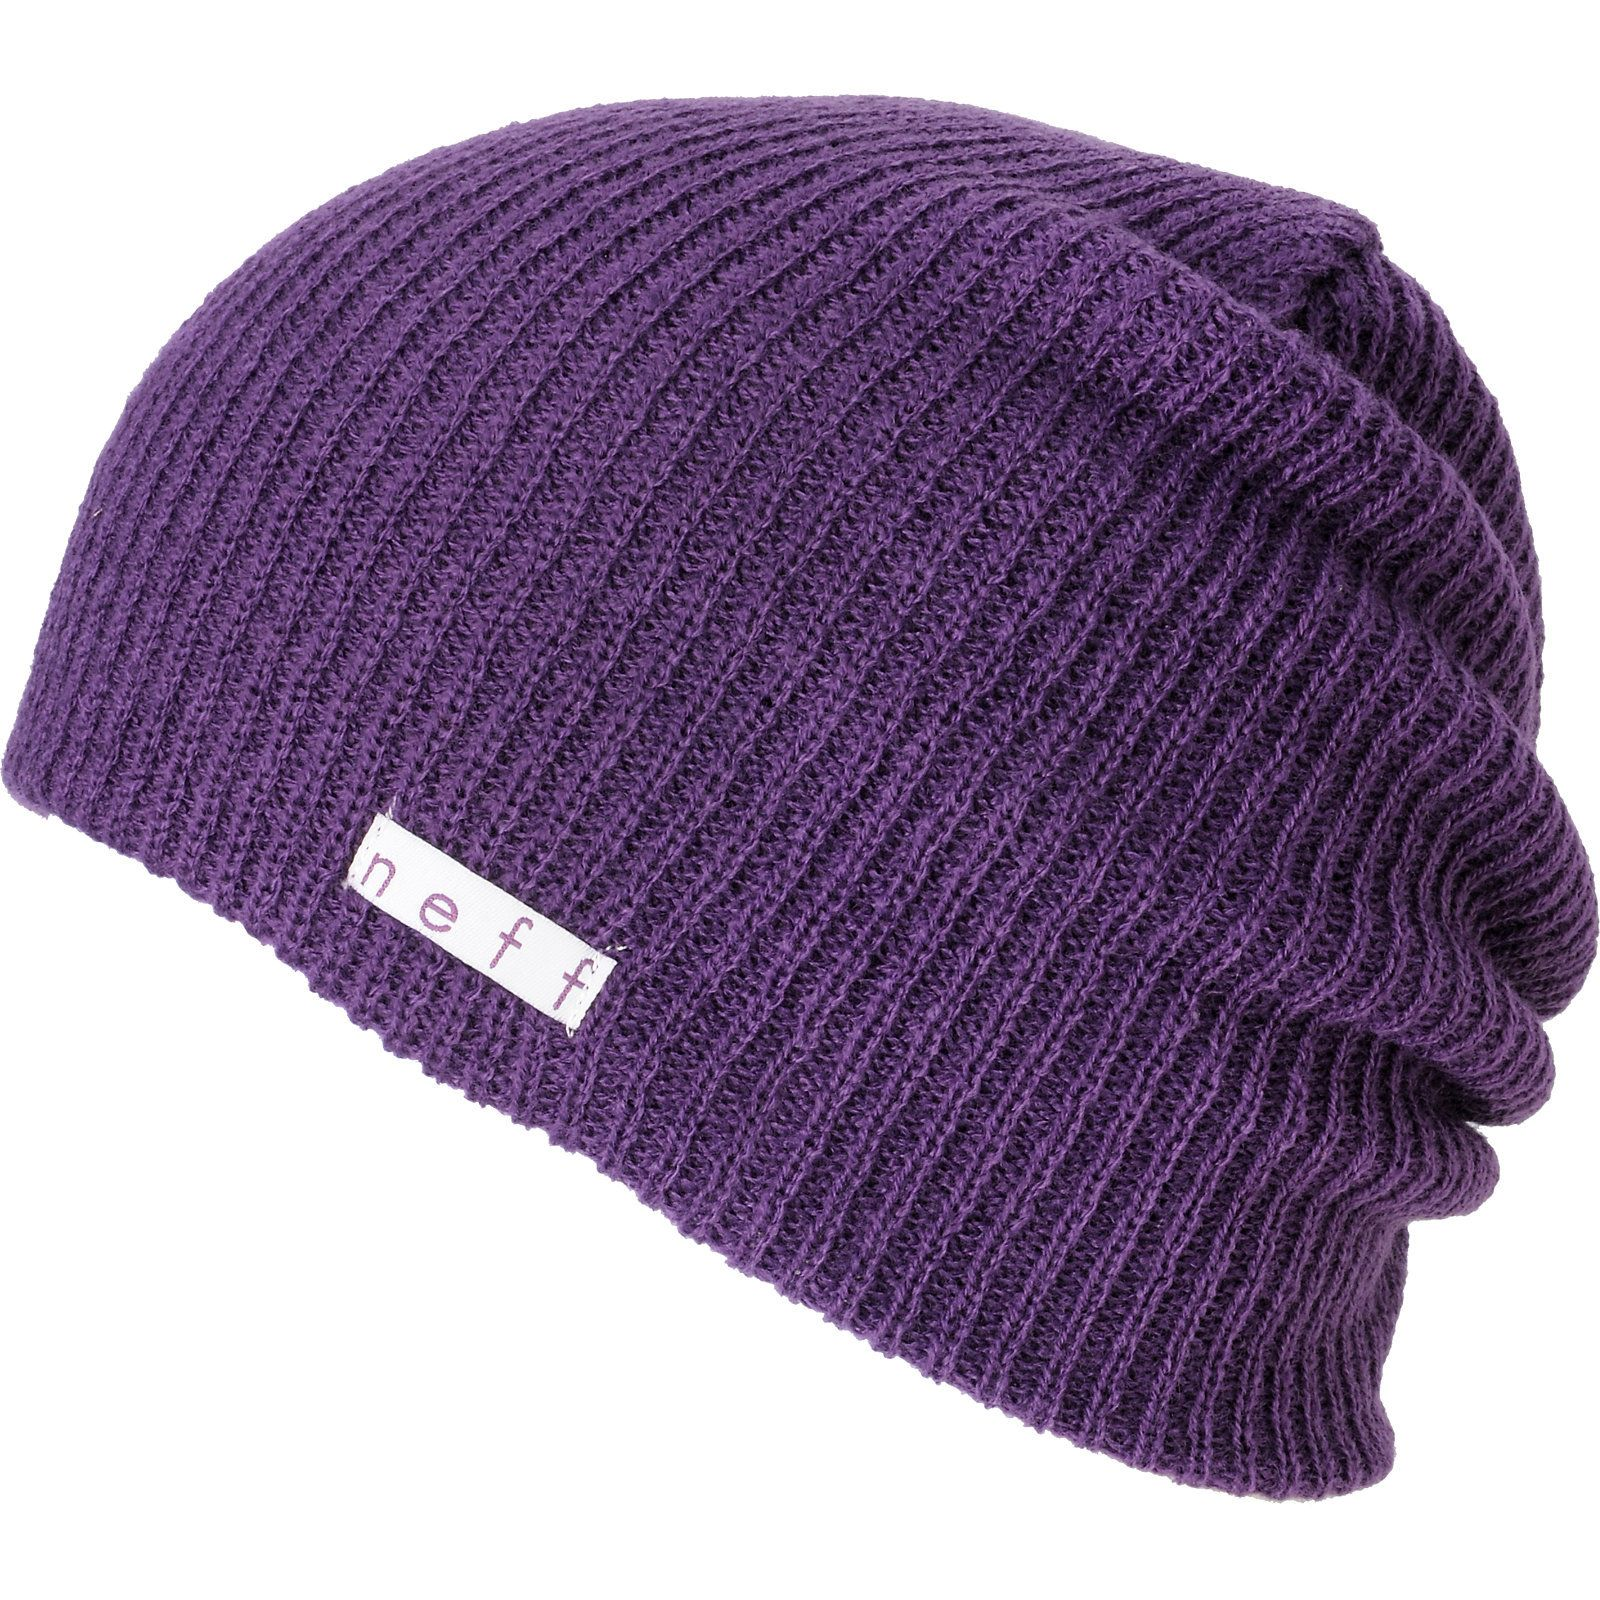 Neff Daily Slouch beanie for cool nights and fun times in the heather  purple and black colorway. Description from pinterest.com. bd6c594aa